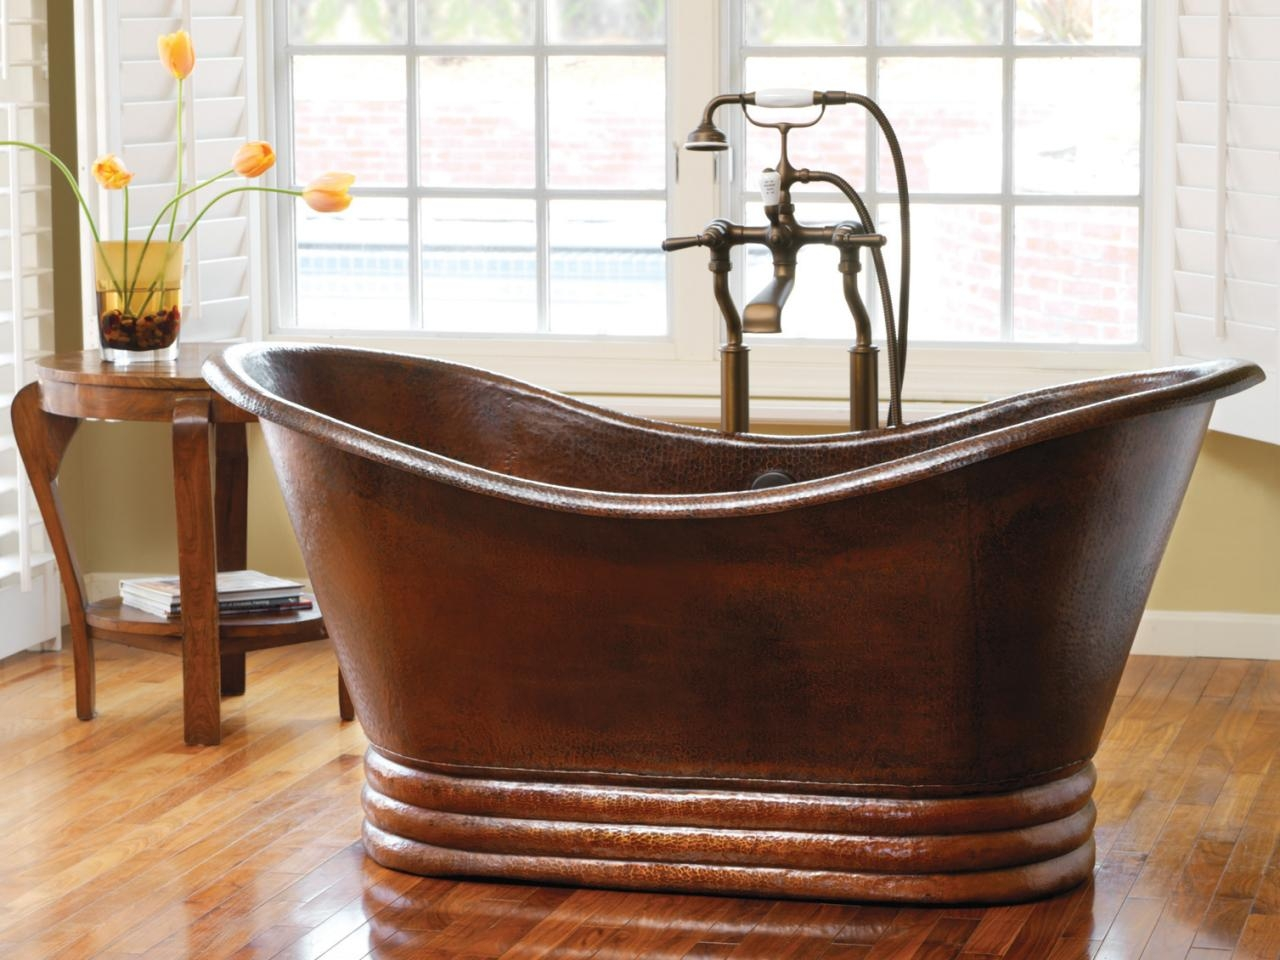 Ideas, old world style bathroom faucets old world style bathroom faucets old style bathtub 102 bathroom ideas with old style moen bathroom 1280 x 960  .